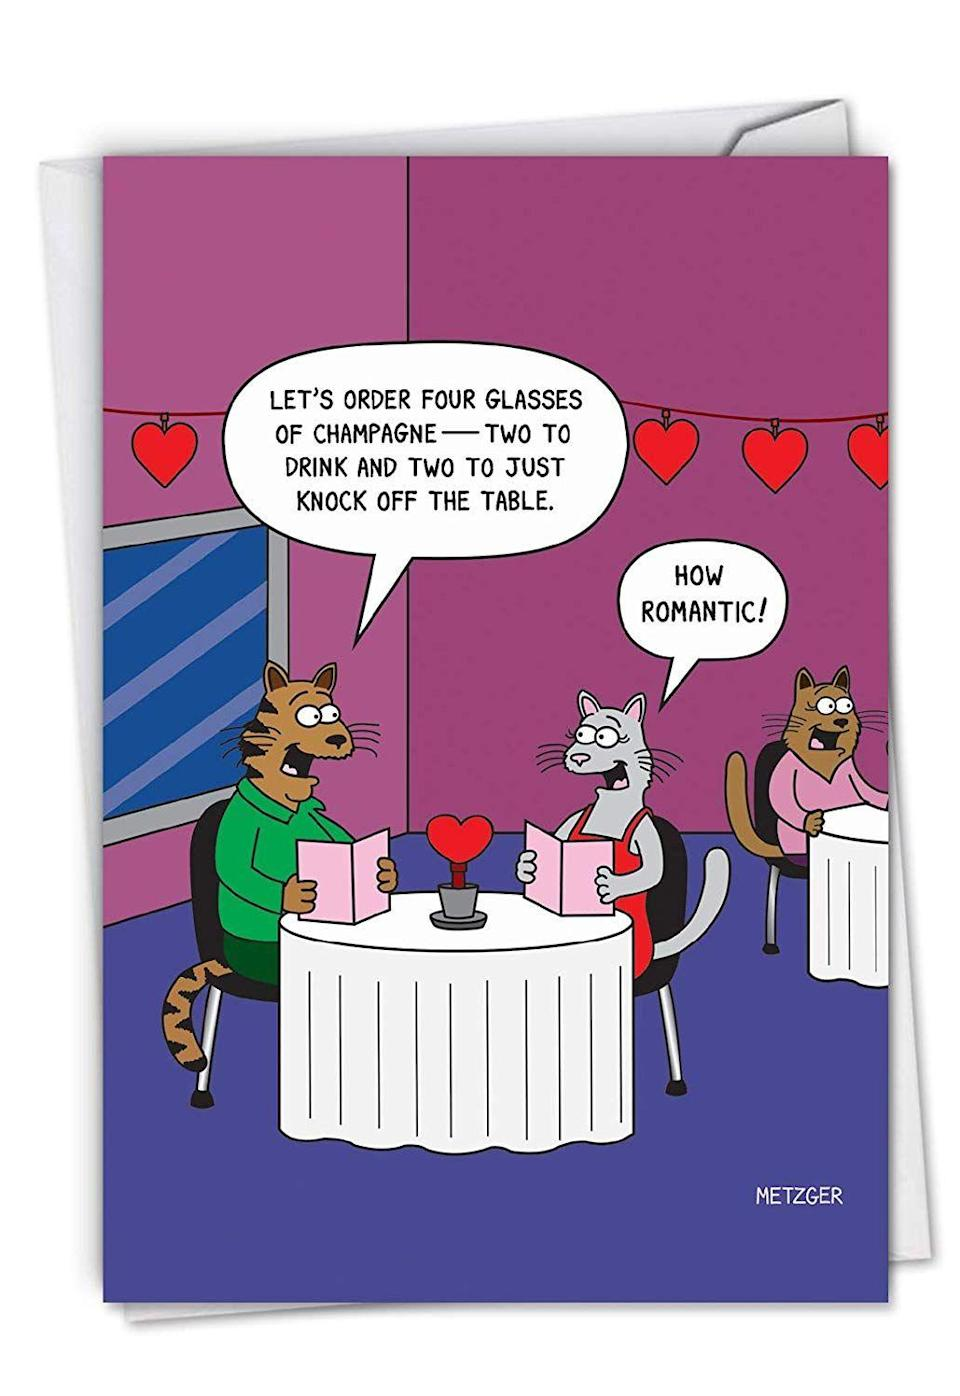 "<p>The inside of this cat card is quite cleverly completed with, ""Wishing You a Purr-fectly Romantic Valentine's Day!""</p><br><br><strong>NobleWorks</strong> Valentine's Day Card With Envelope, $5.25, available at <a href=""https://www.amazon.com/2151-Never-Find-Your-Body/dp/B07GXGR4B7/ref=sr_1_7?ie=UTF8&qid=1548438718&sr=8-7&keywords=valentines%2Bday%2Bcard&th=1"" rel=""nofollow noopener"" target=""_blank"" data-ylk=""slk:Amazon"" class=""link rapid-noclick-resp"">Amazon</a>"